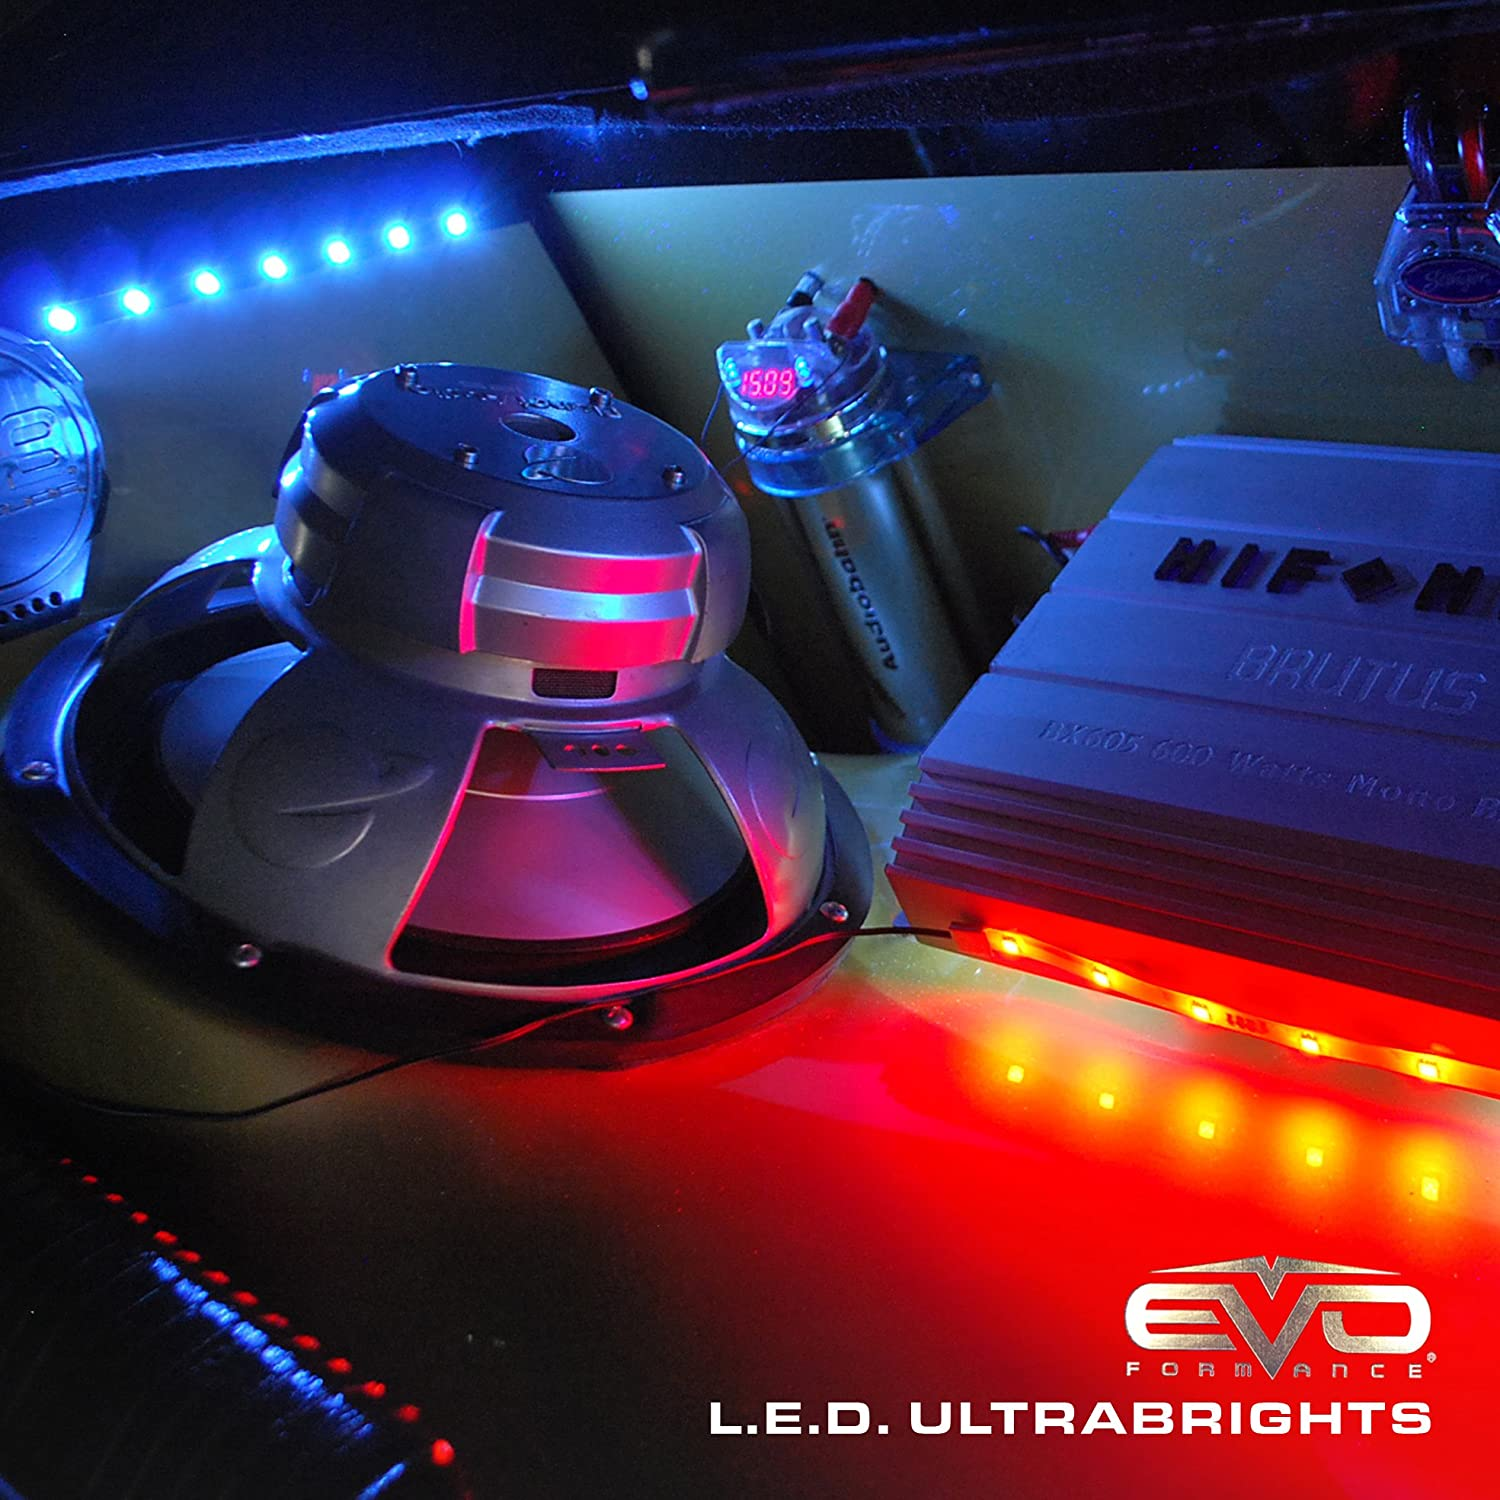 CIPA 93281 Red 8 Ultrabright Flexible Neon Replacement LED Light Strip